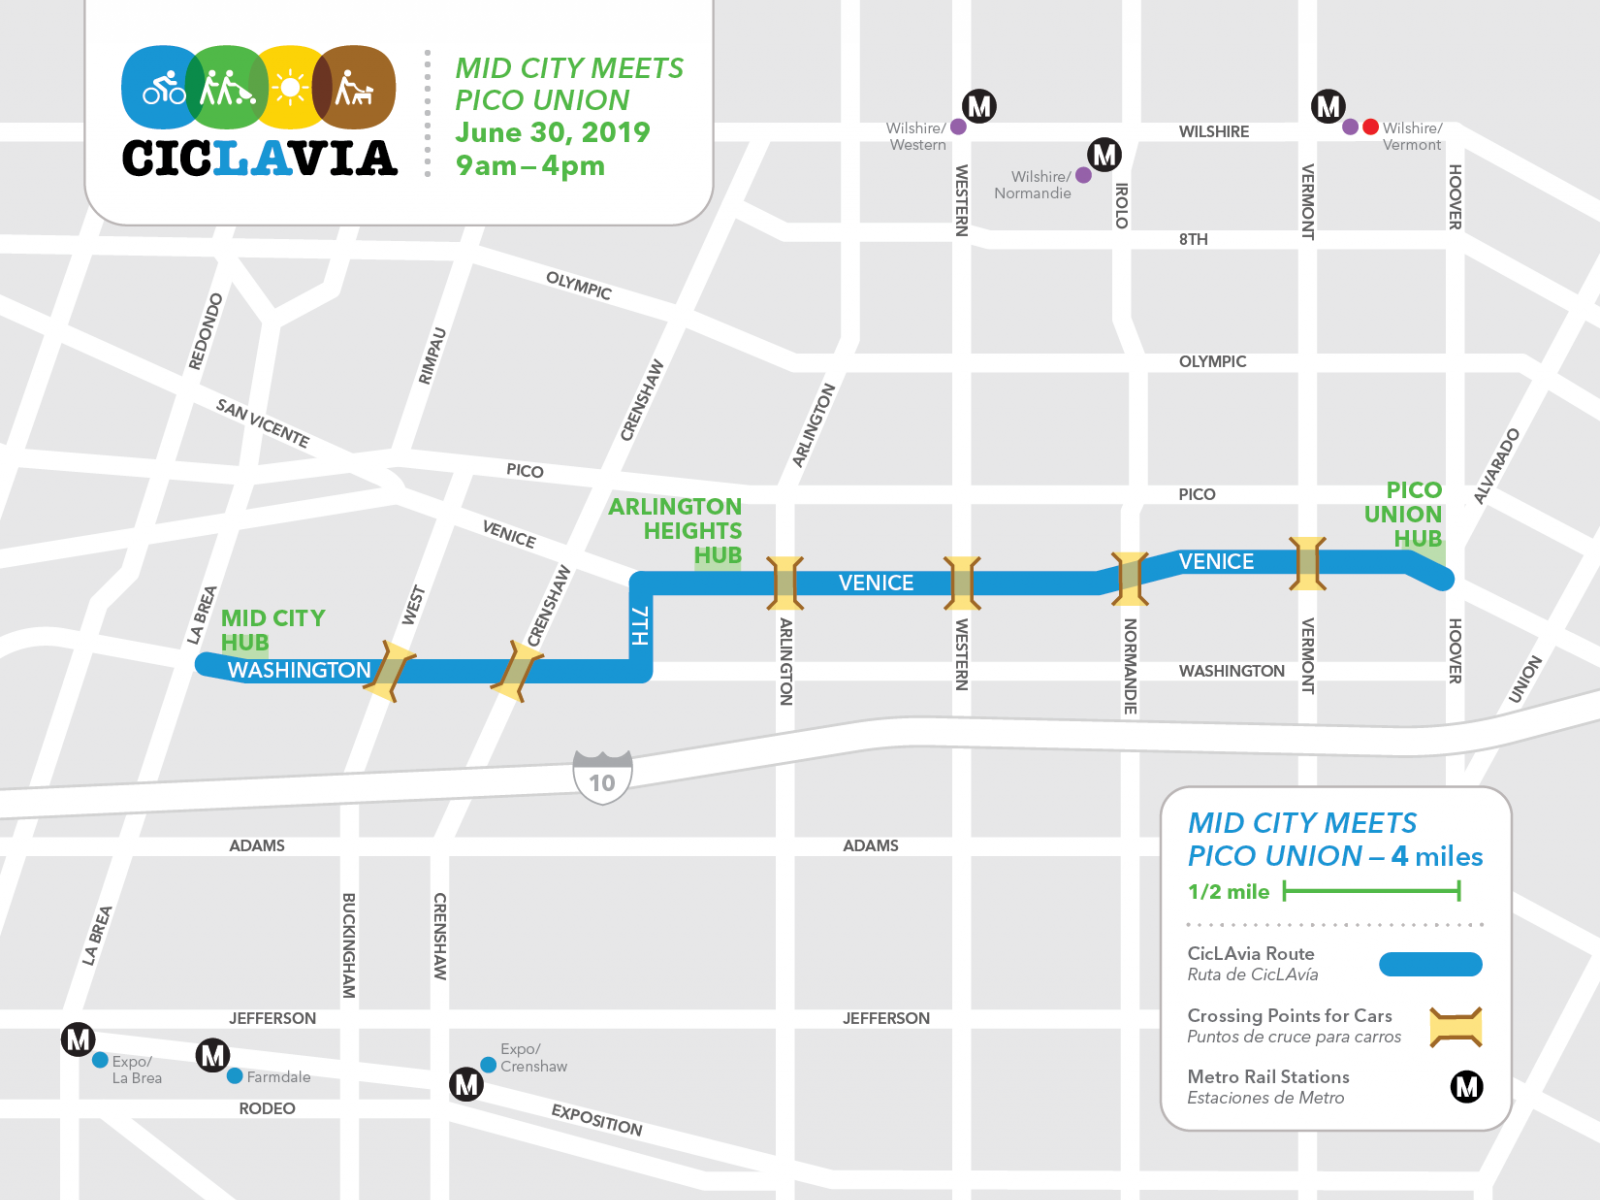 CicLAvia—Mid City Meets Pico Union on June 30